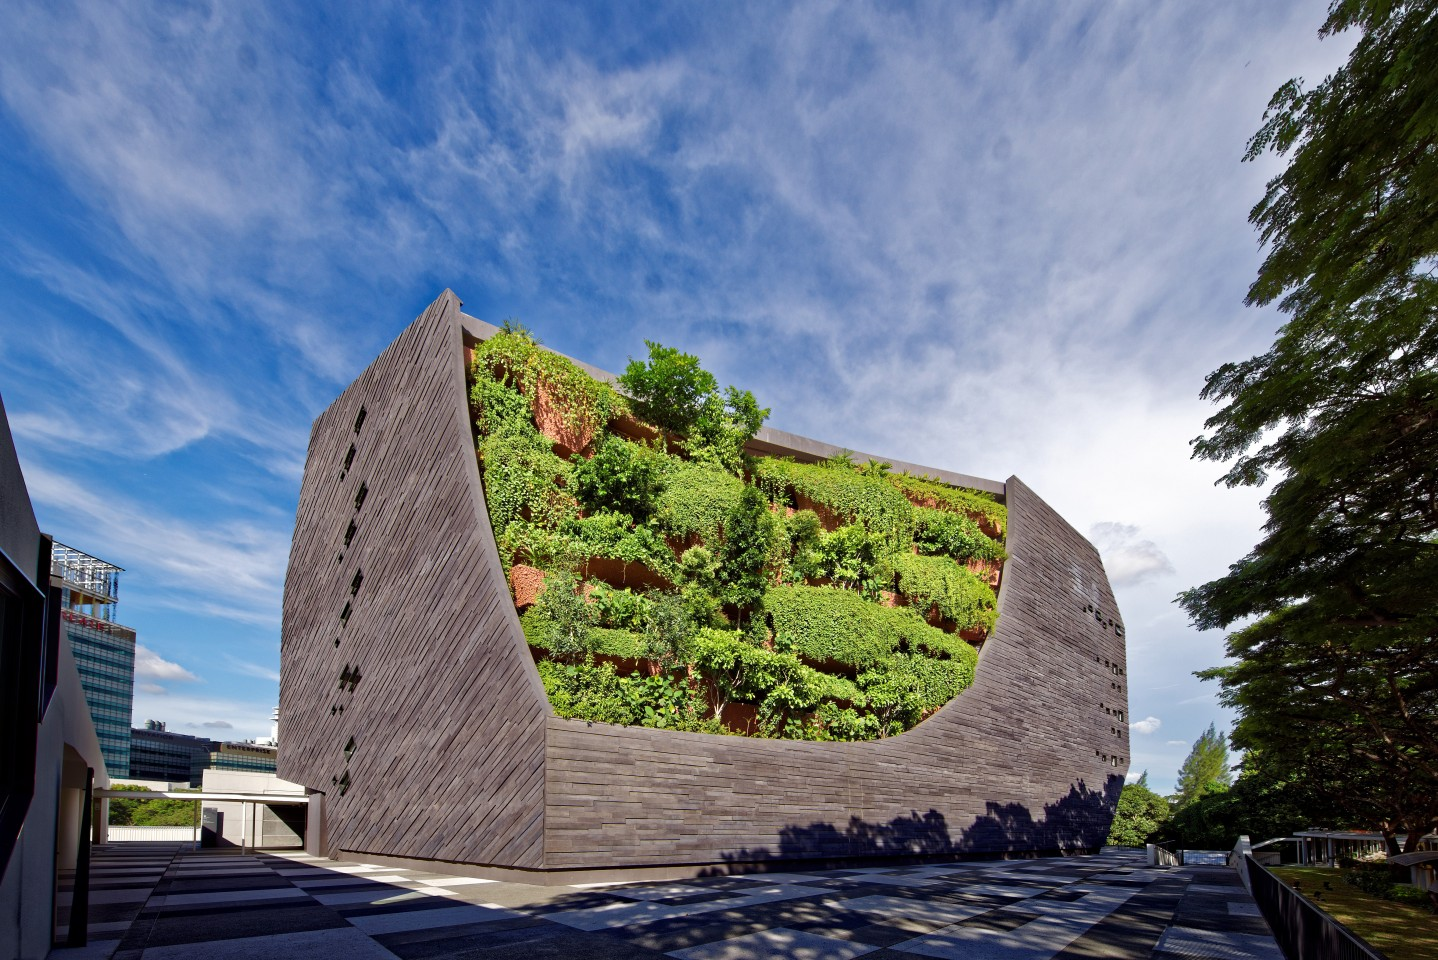 Mok's Lee Kong Chian Natural History Museum. (Photo: Teo Zi Tong)